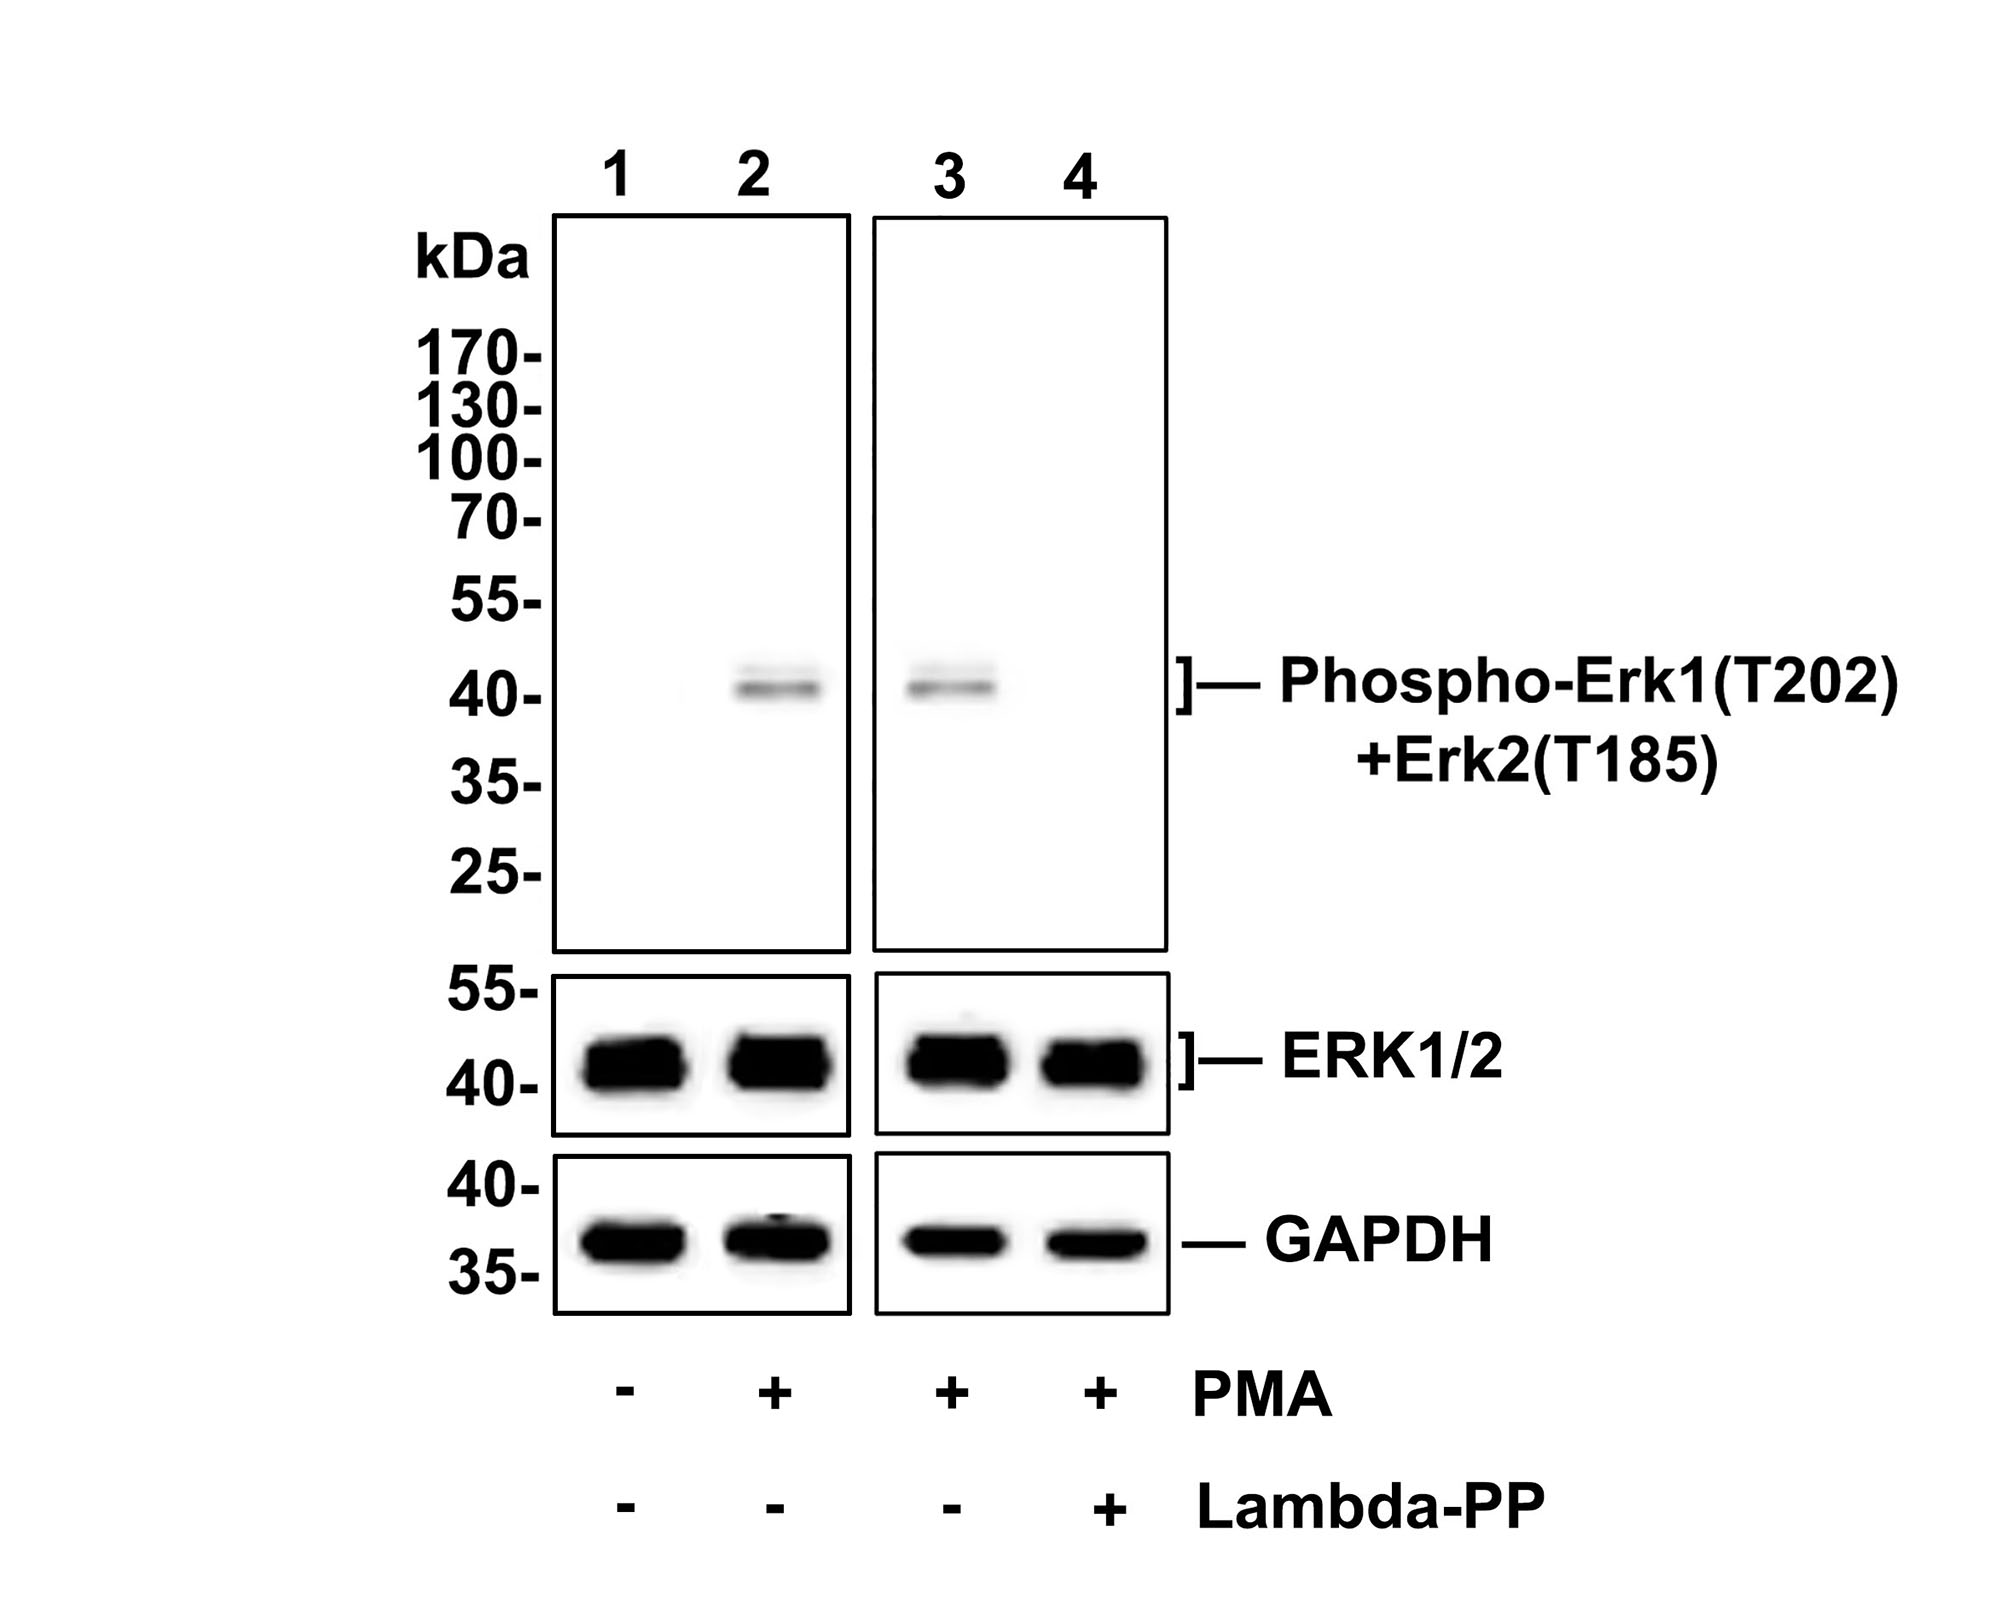 ICC staining of Phospho-Erk1(T202)+Erk2(T185) in A549 cells (green). Formalin fixed cells were permeabilized with 0.1% Triton X-100 in TBS for 10 minutes at room temperature and blocked with 1% Blocker BSA for 15 minutes at room temperature. Cells were probed with the primary antibody (ET1603-22, 1/50) for 1 hour at room temperature, washed with PBS. Alexa Fluor®488 Goat anti-Rabbit IgG was used as the secondary antibody at 1/1,000 dilution. The nuclear counter stain is DAPI (blue).